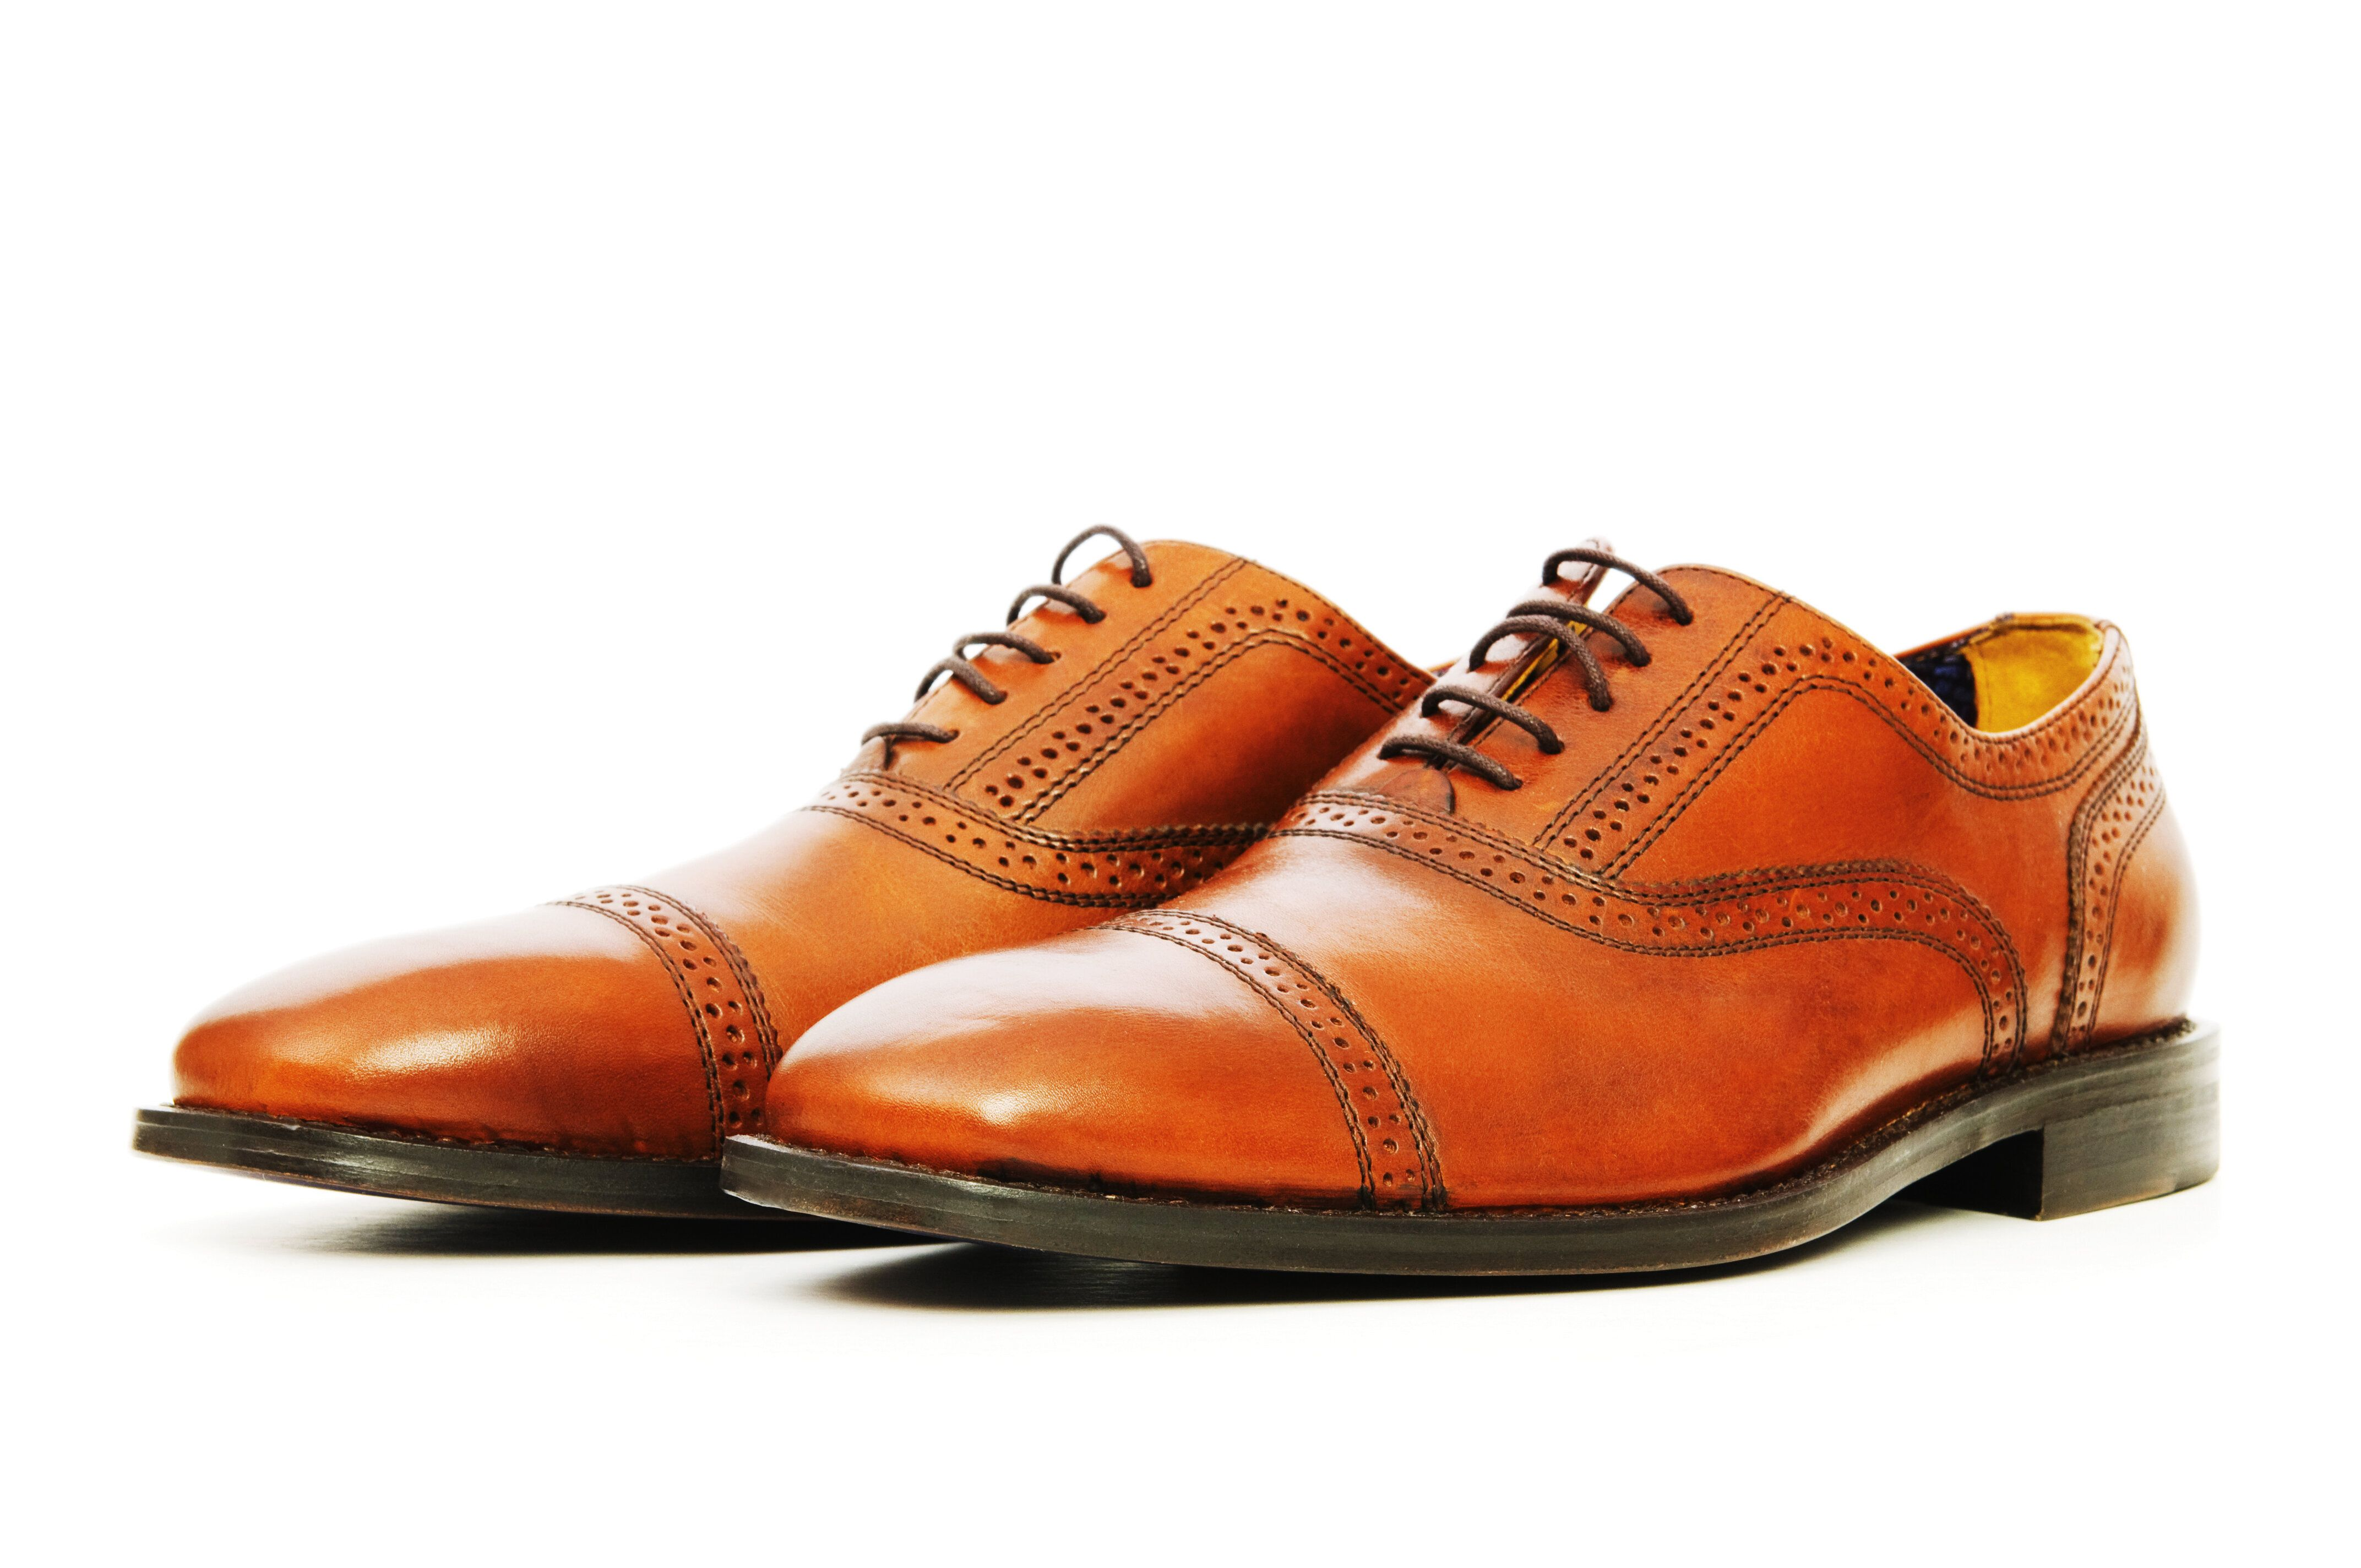 Avoid spraying leather shoes with Lysol -- it's one of the only surfaces that can't withstand the chemicals.